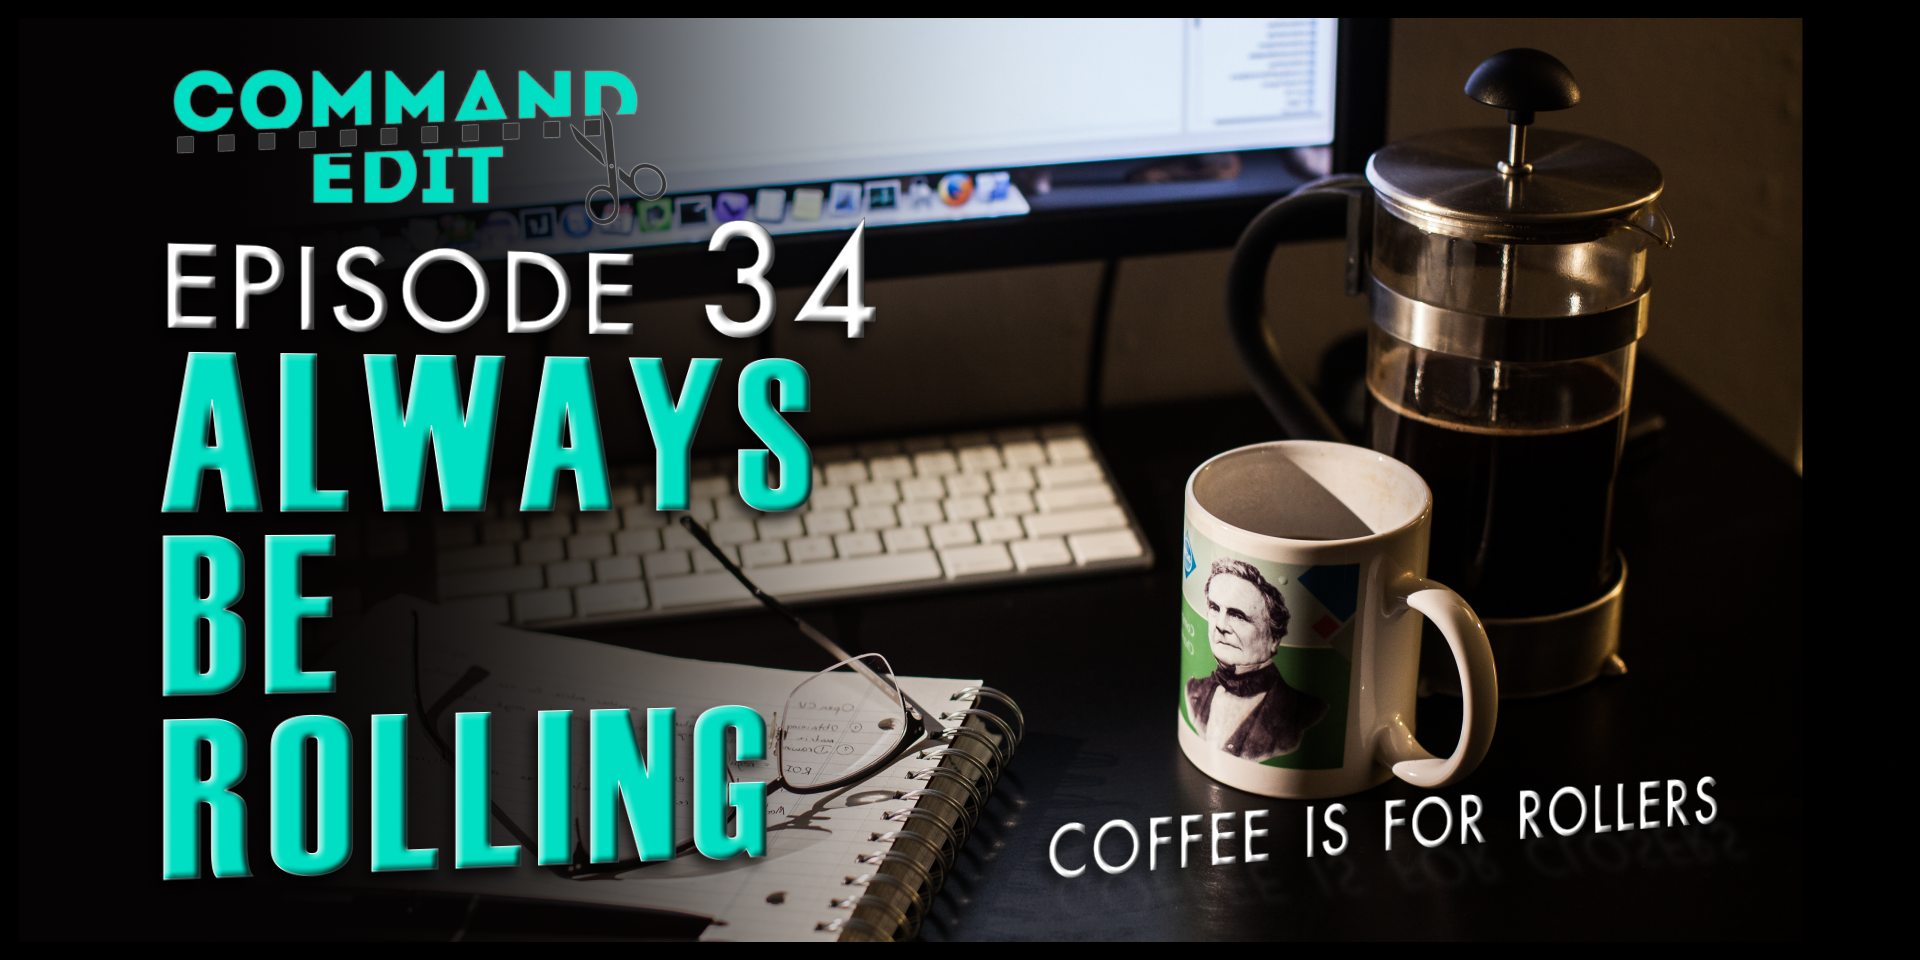 Episode 34 Command Edit Podcast Always be Closing Coffee is for Closers